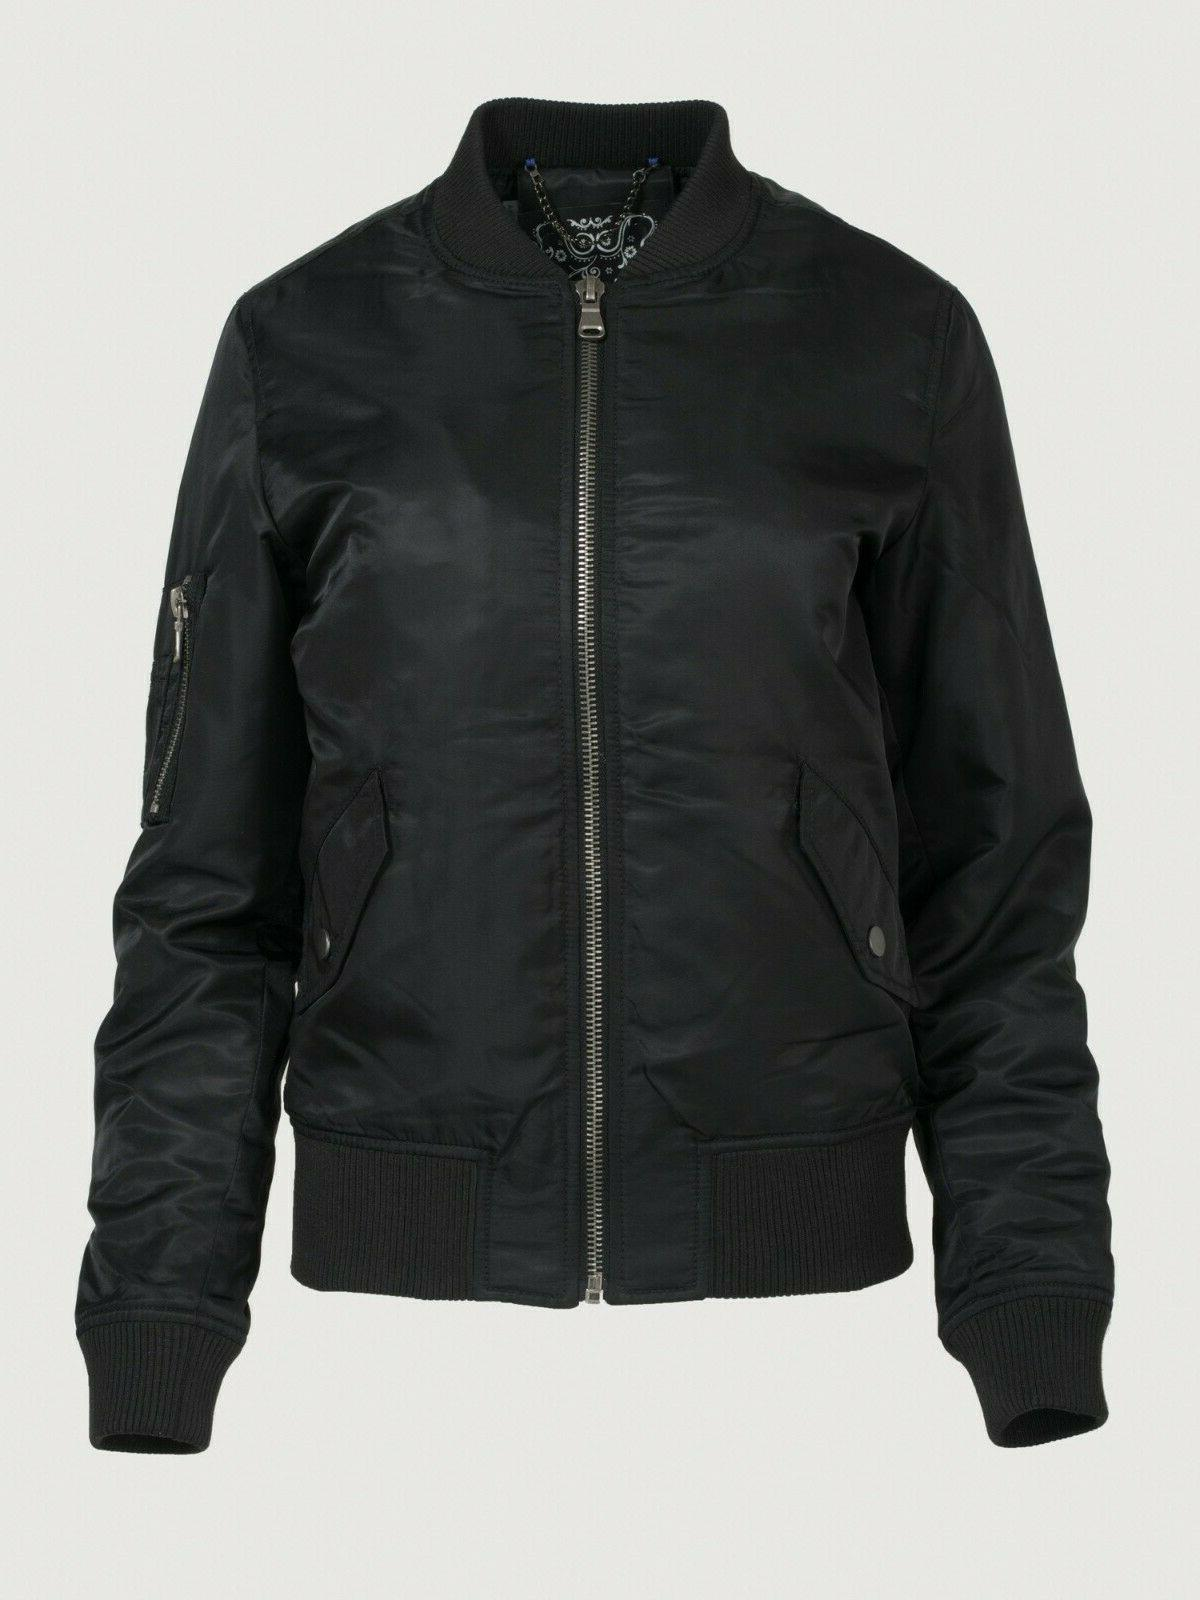 New $98 Dillards water resistant bomber jacket XS